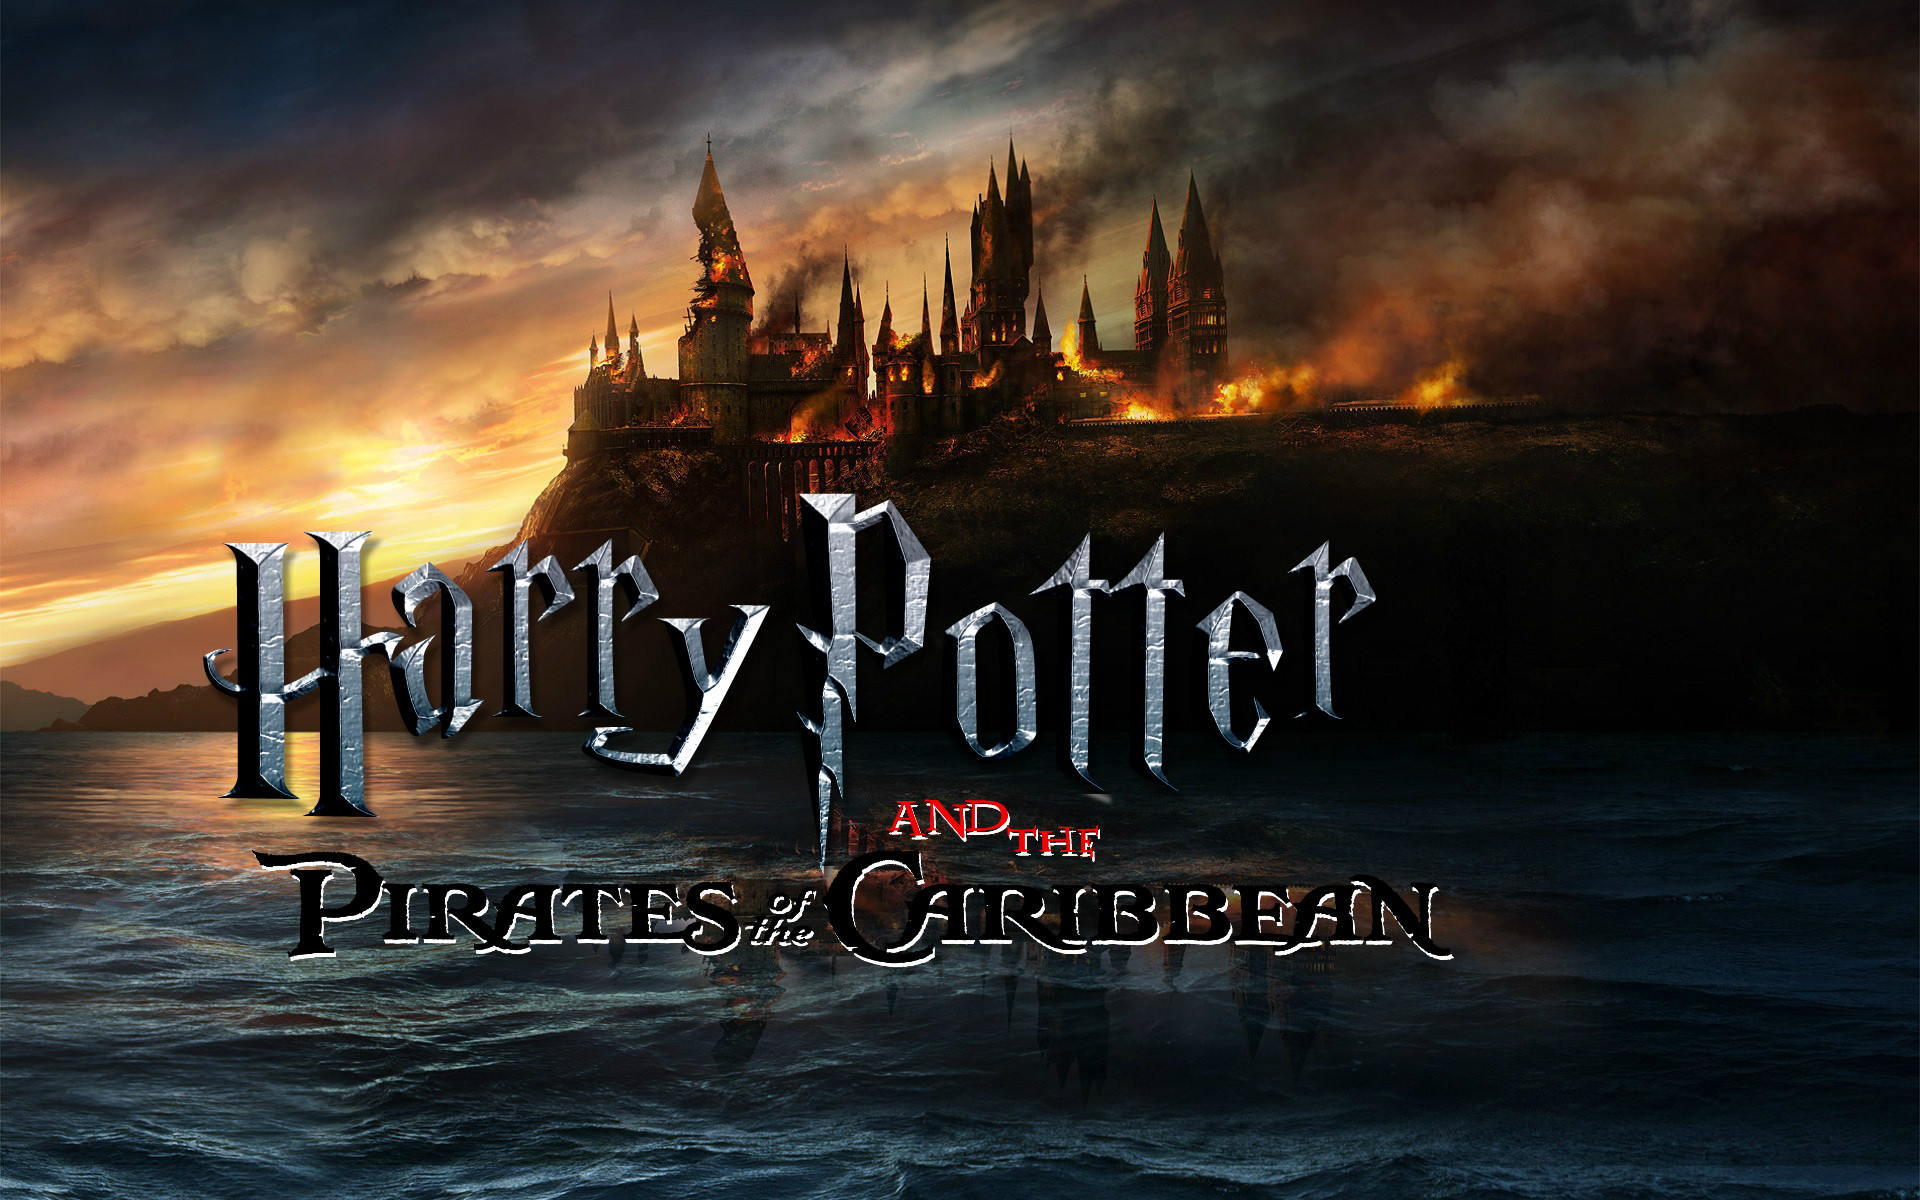 Harry Potter and the Pirates of the Carribean